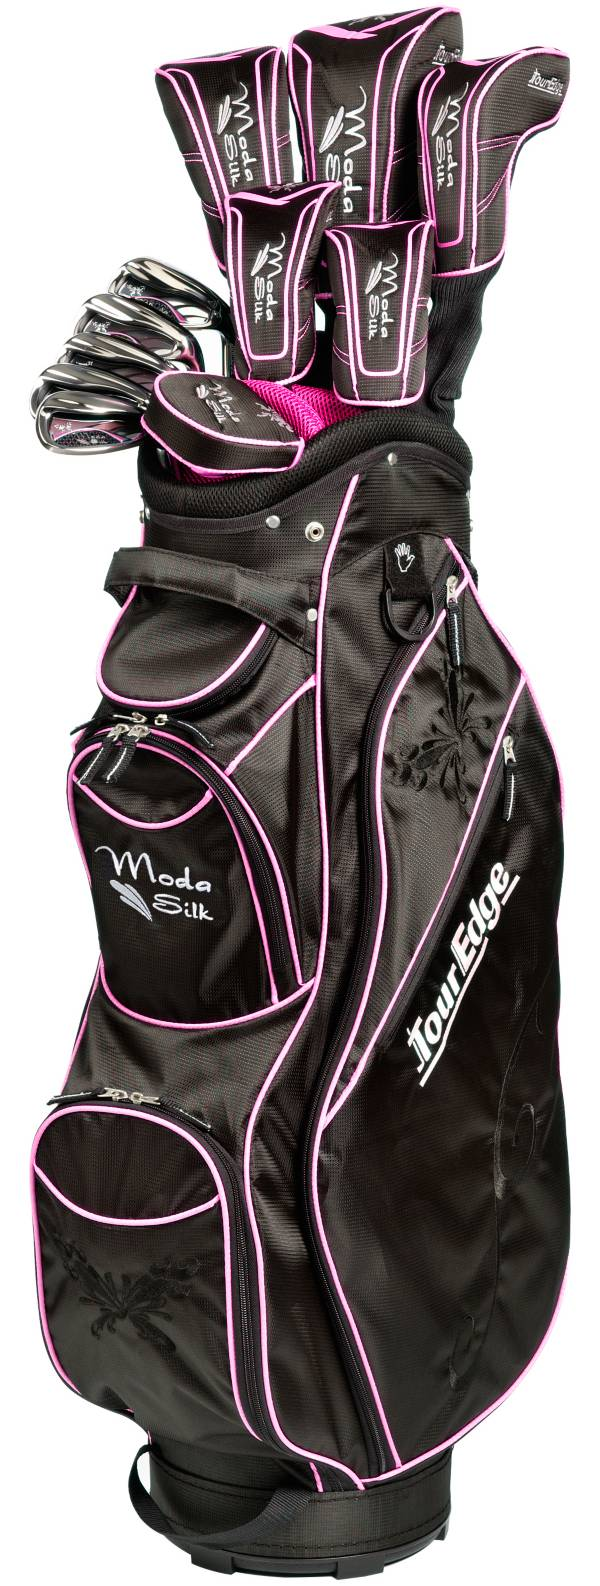 Tour Edge Women's Moda Silk 17-Piece Complete Set – (Graphite) product image